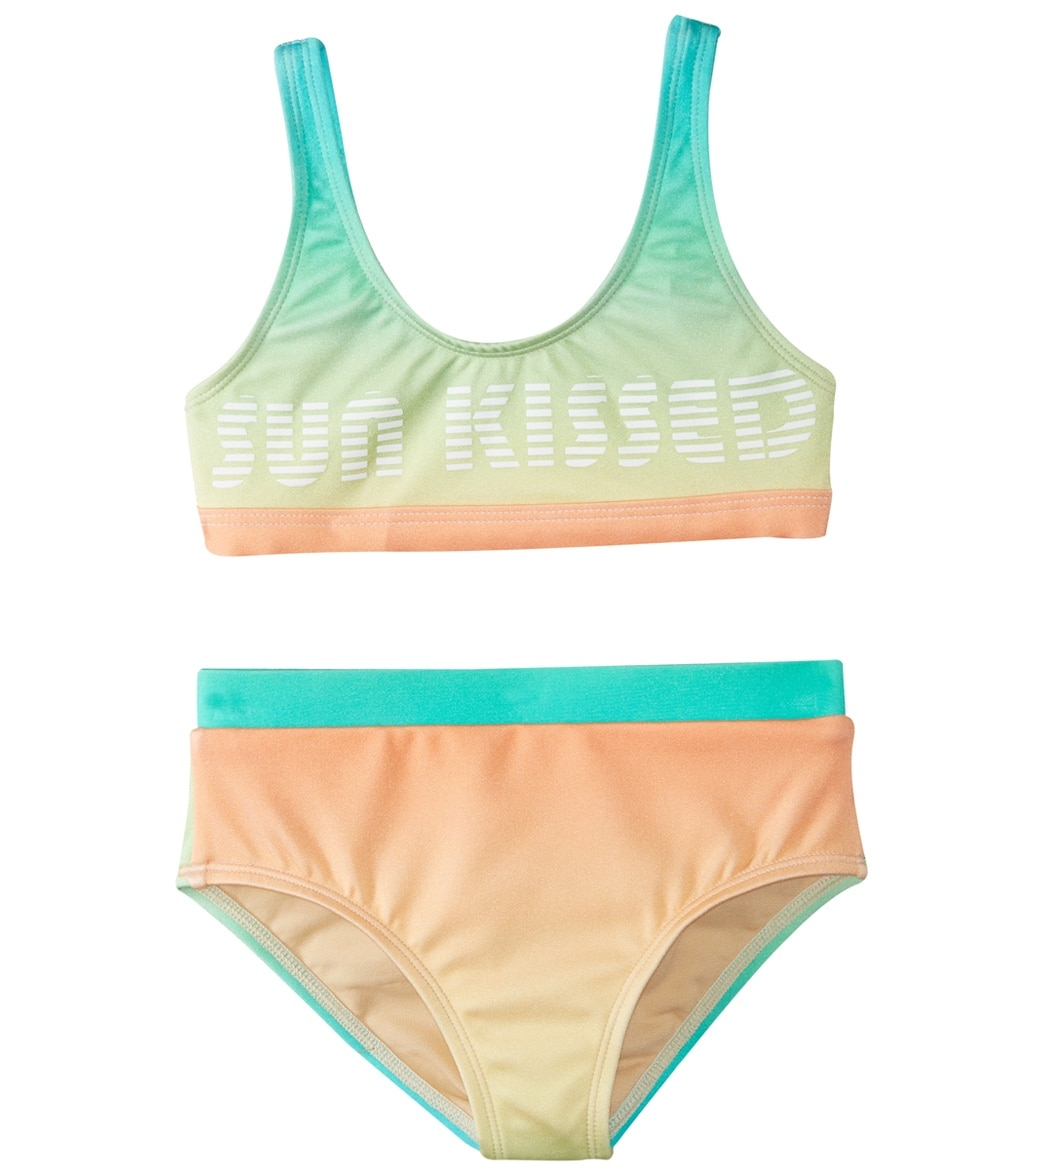 9861ebe03b Reef Girls' Teen Spirit Sport Halter & High Waisted Two Piece Bikini Set  (Big Kid) at SwimOutlet.com - Free Shipping